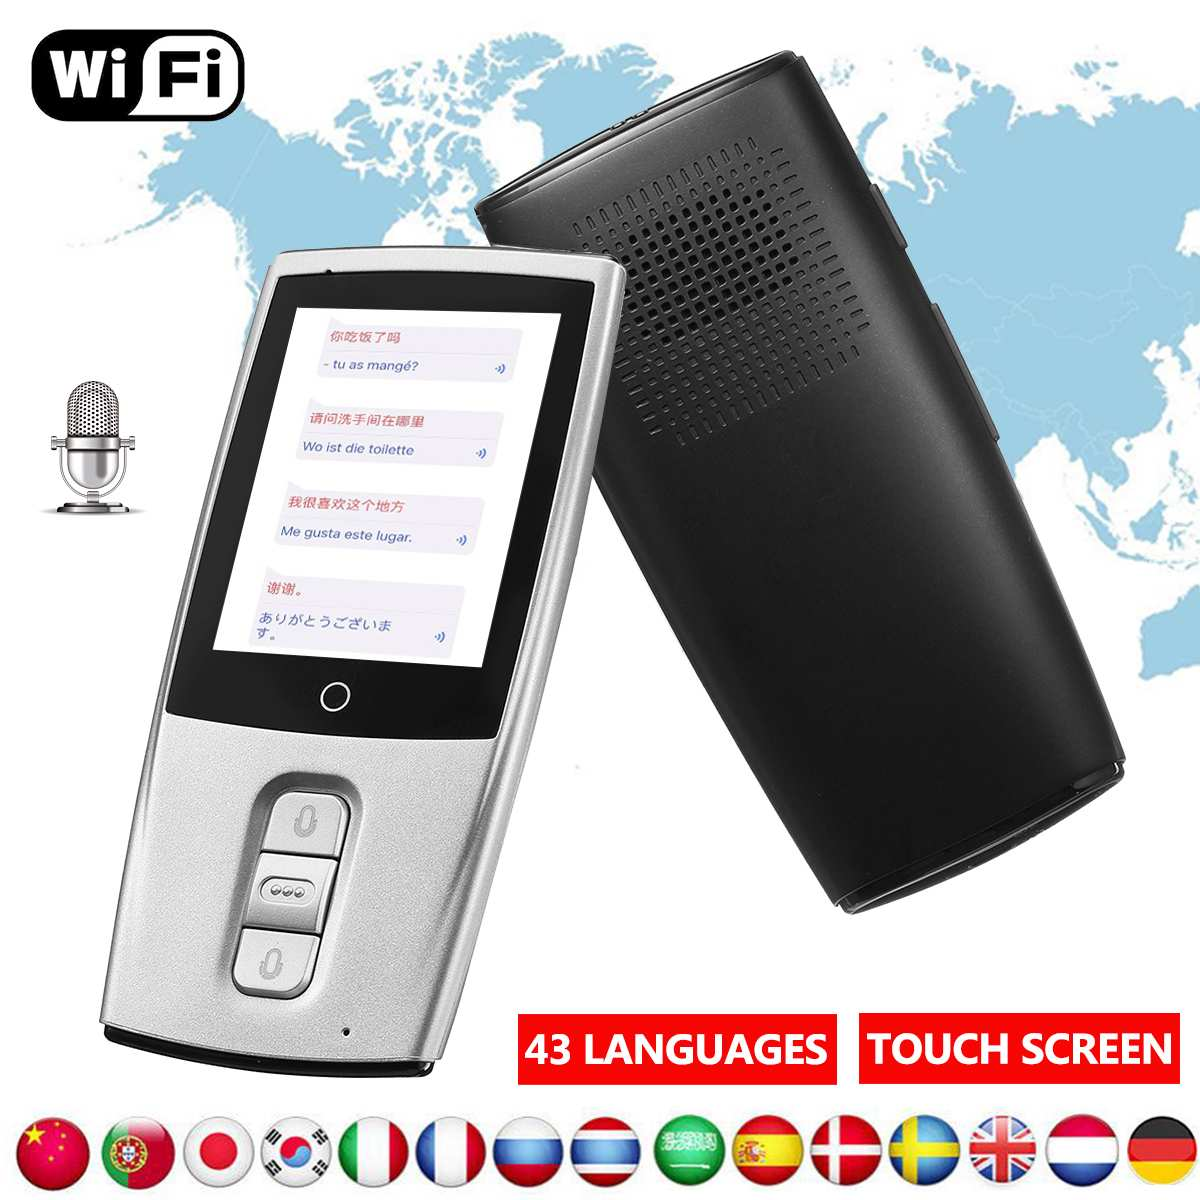 2.4inch Smart Voice Translator Two Way Portable Traductor Real Time WiFi Translation 43 Languages Learn Russian English Language2.4inch Smart Voice Translator Two Way Portable Traductor Real Time WiFi Translation 43 Languages Learn Russian English Language